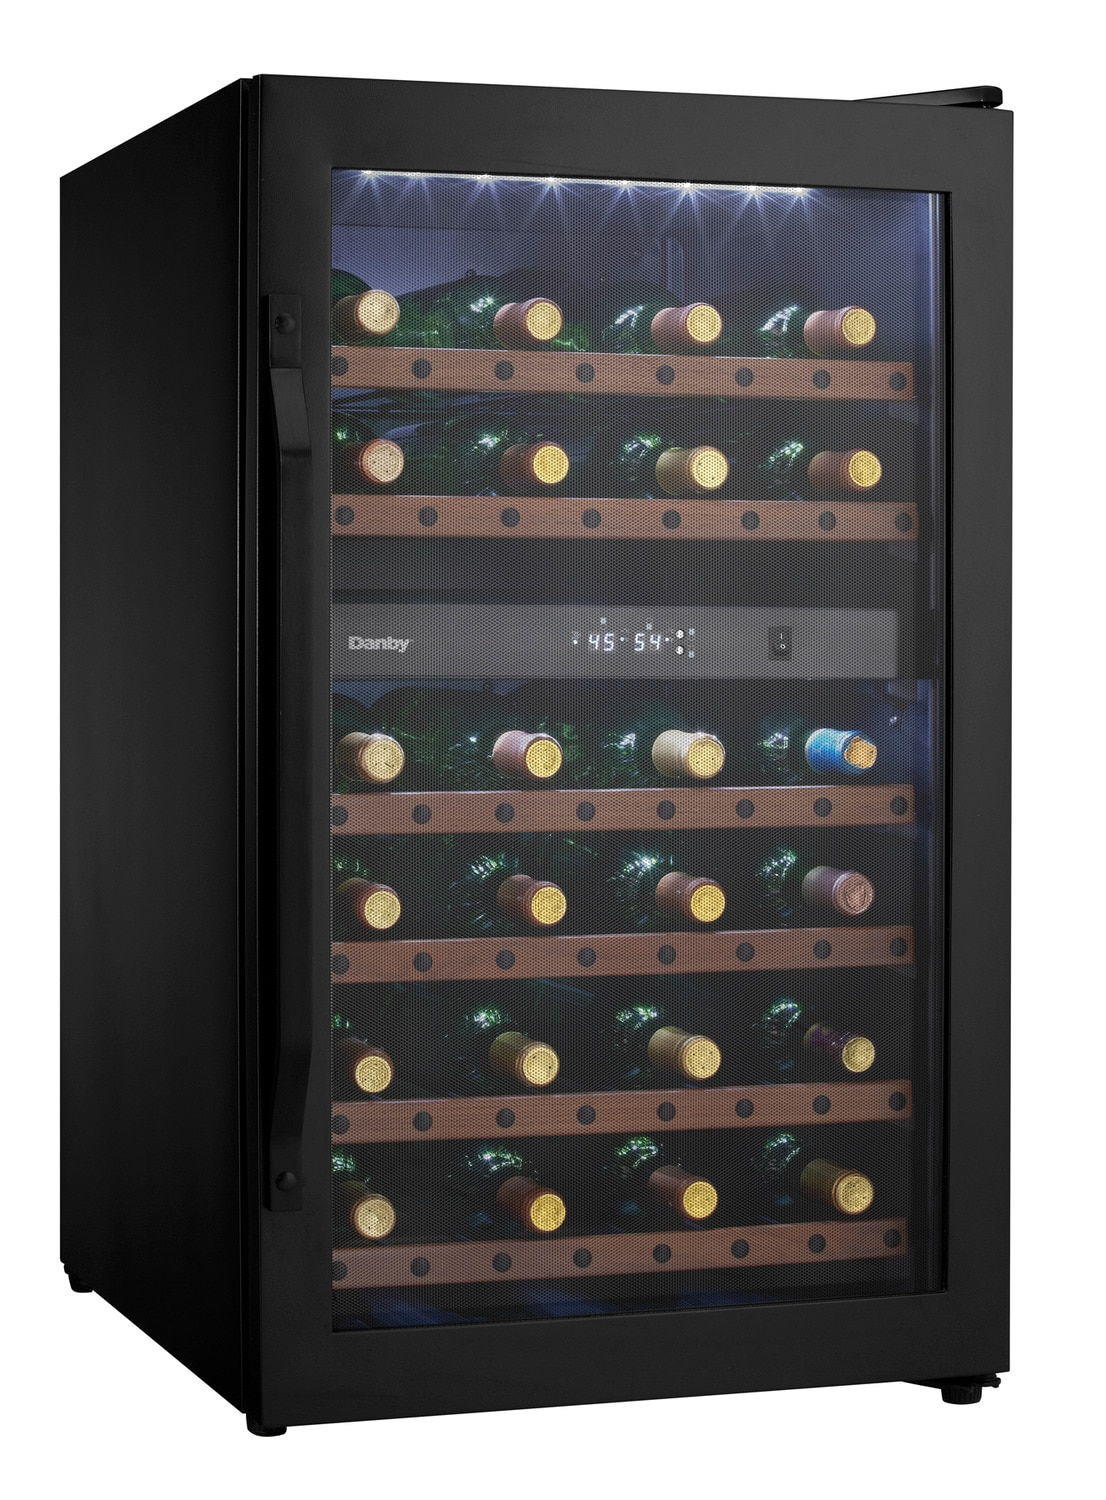 danby black dualzone wine cooler 4 cu ft dwc040a2bdb